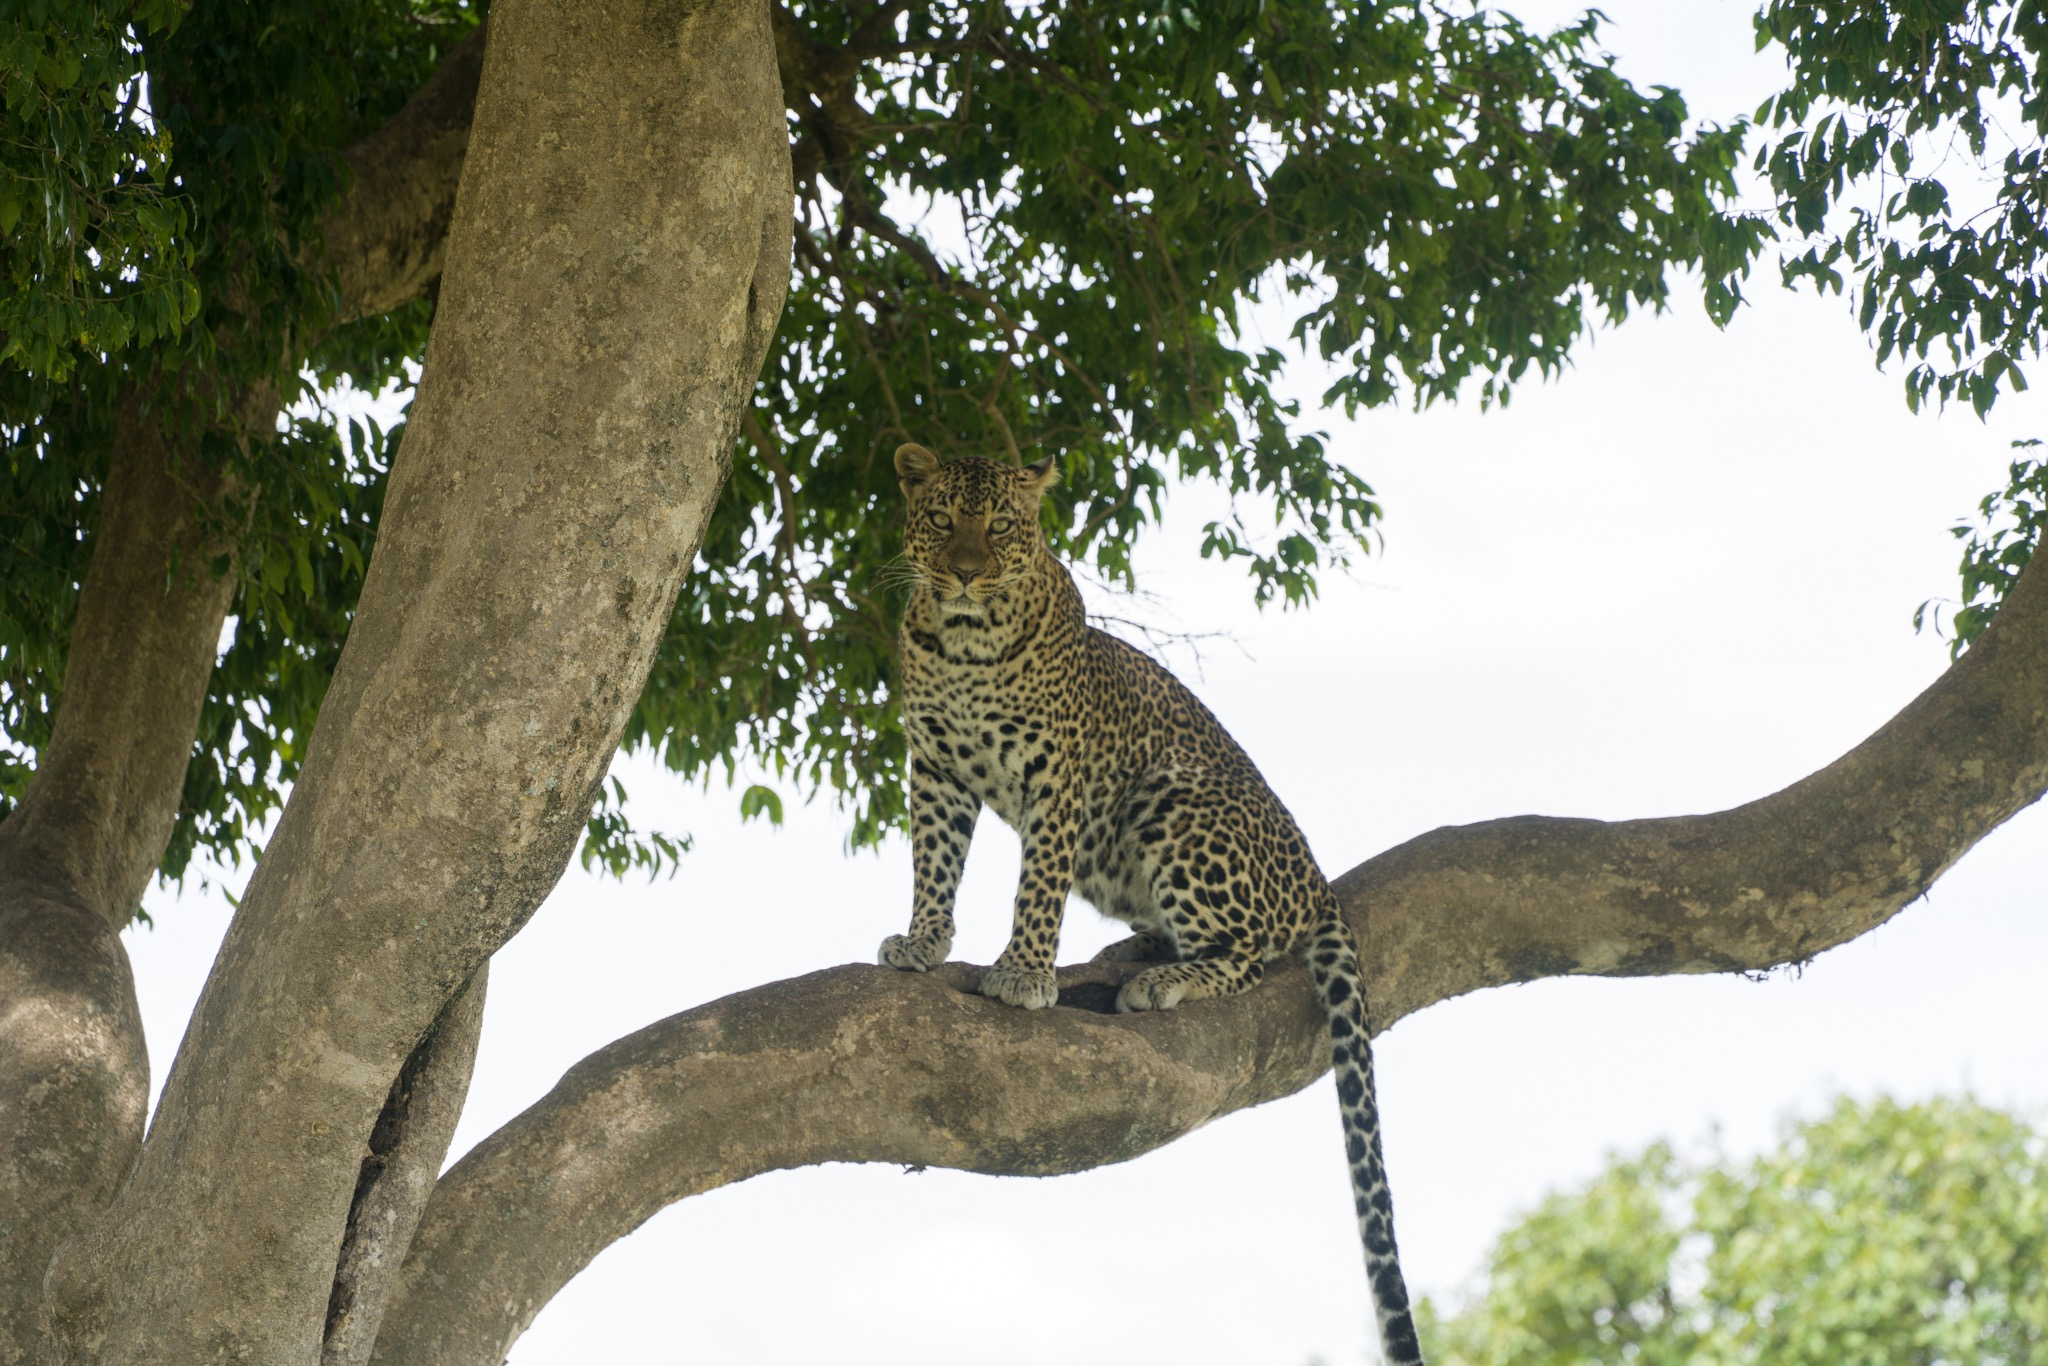 We found a leopard in the tree